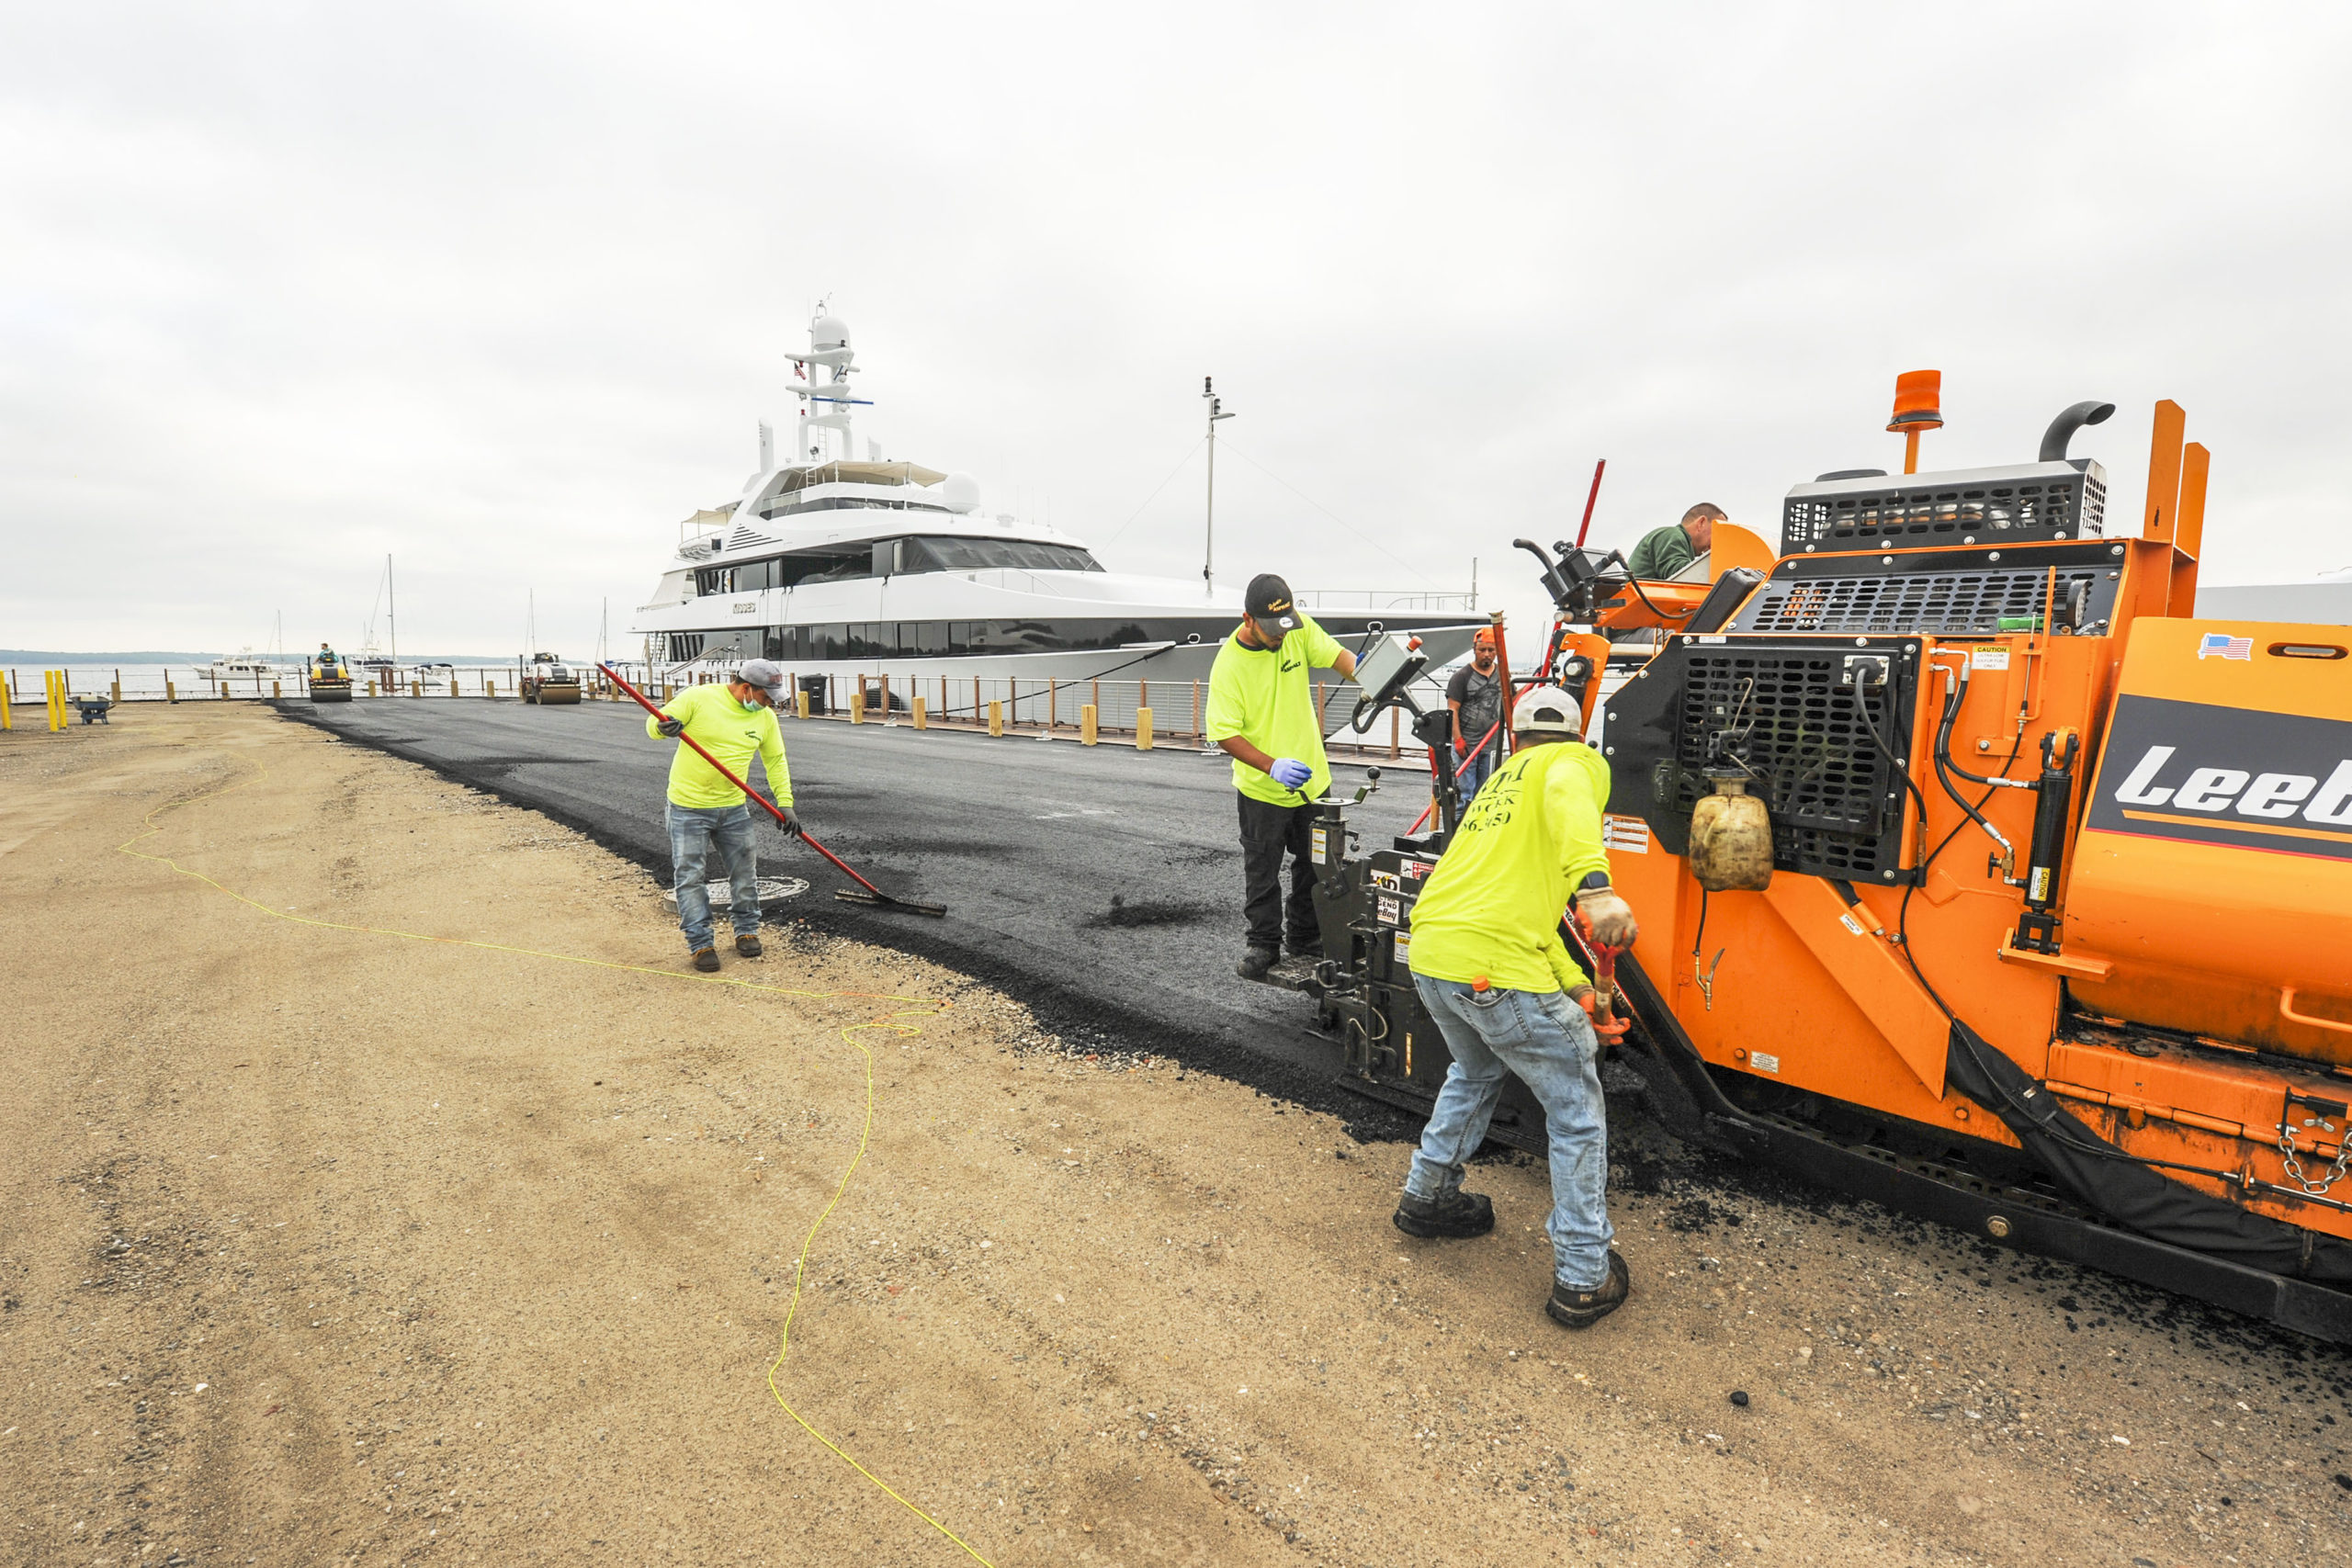 Workers were busy paving Long Wharf in Sag Harbor in anticipation of its reopening in time for the July 4 weekend. MICHAEL HELLER